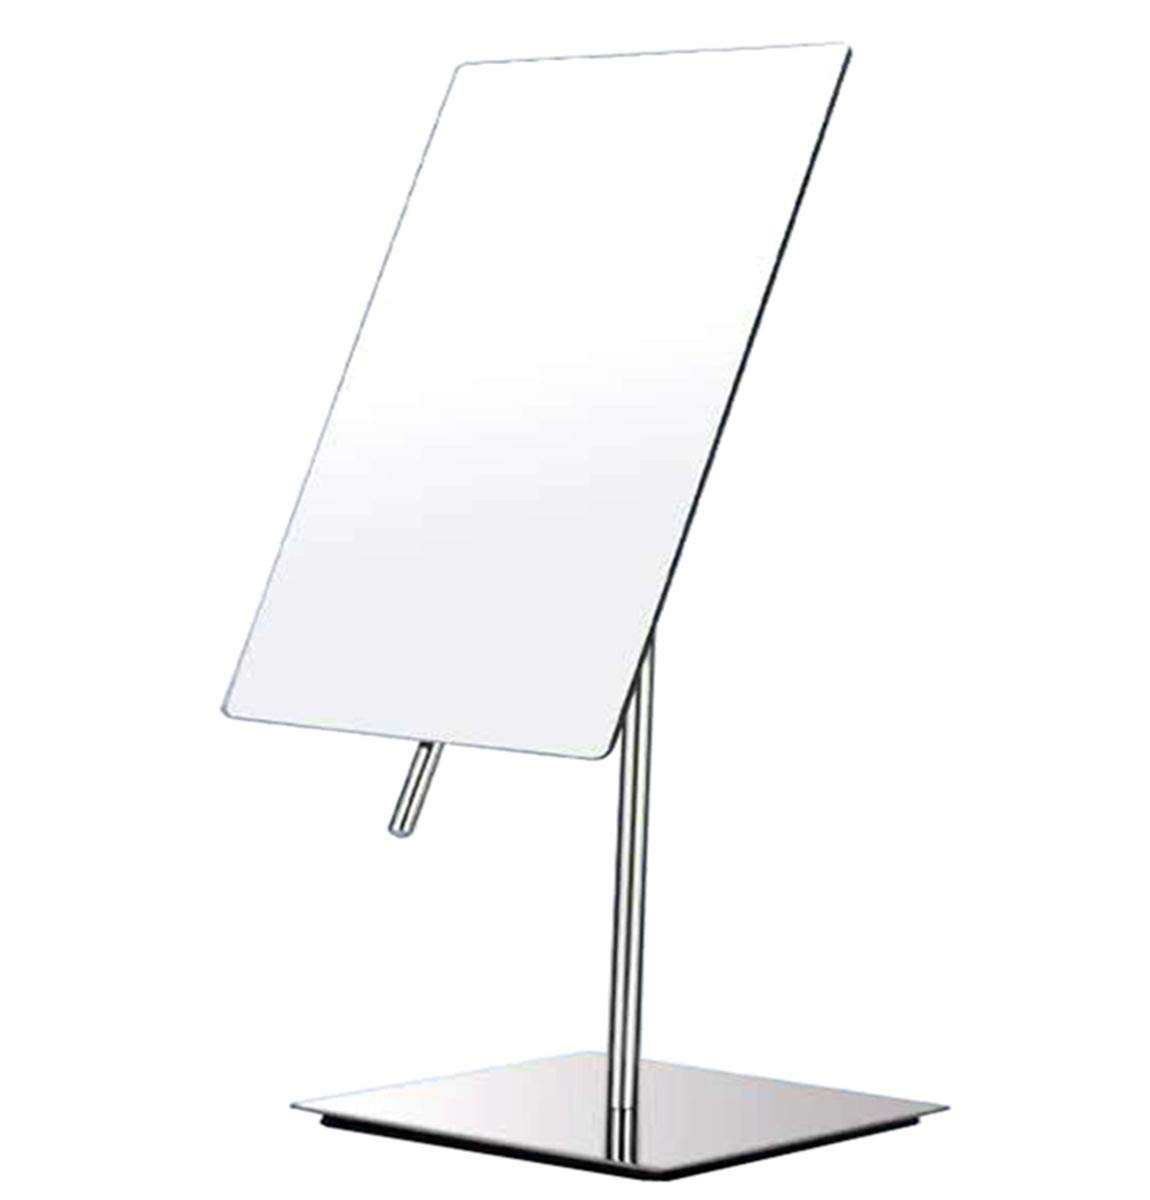 iRomic 3X Magnified Modern Vanity Makeup Mirror,Adjustable Portable Rectangle Framless Countertop tabletop Cosmetic Beauty Mirror,Premium Stainless Still Polished Chrome Finish